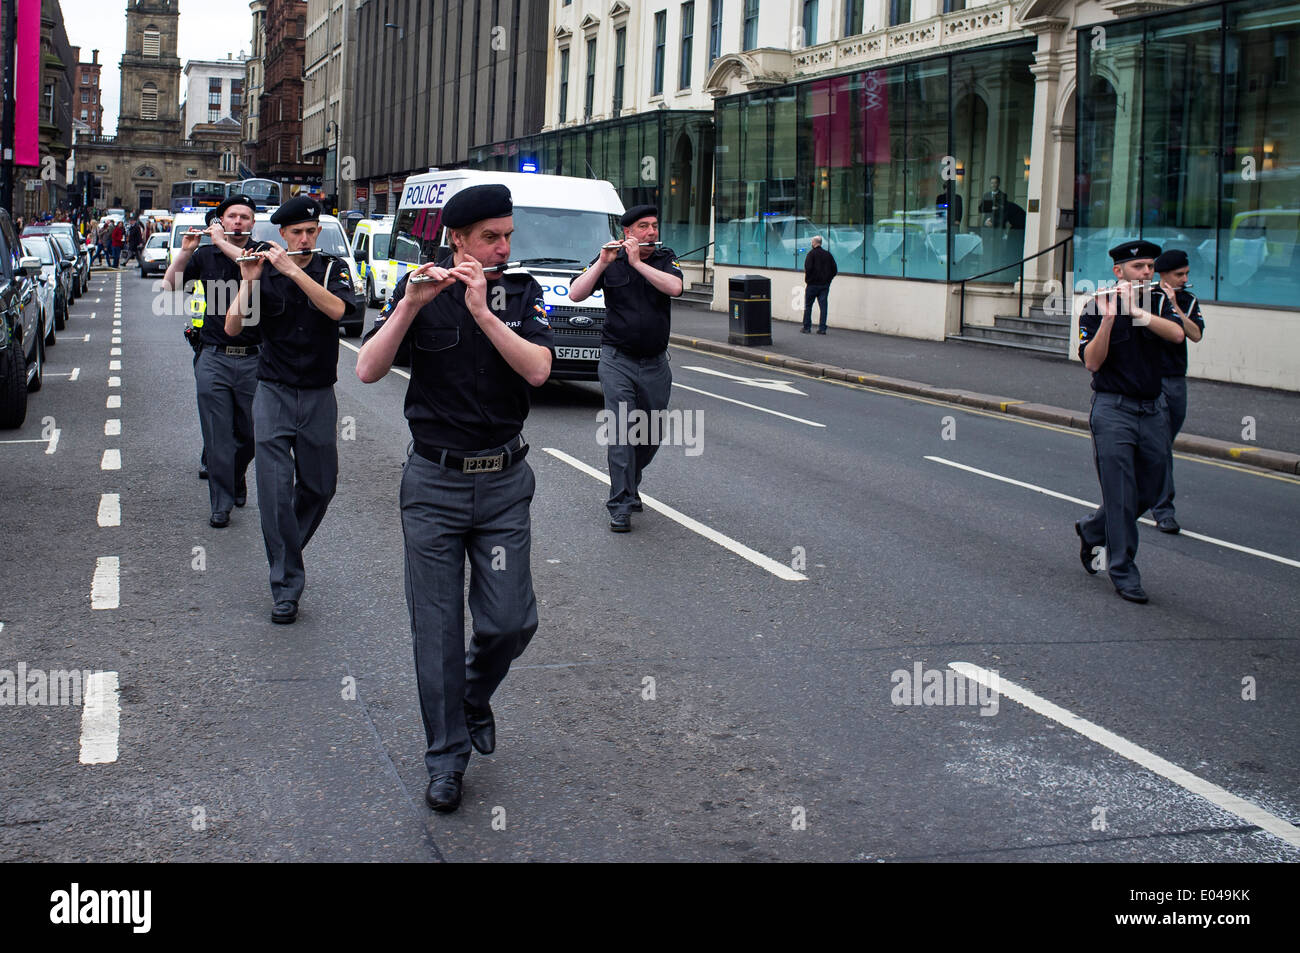 Members of the pro-Irish republican supporting Cairde na Heireann organization parading through Glasgow city, Scotland, UK - Stock Image